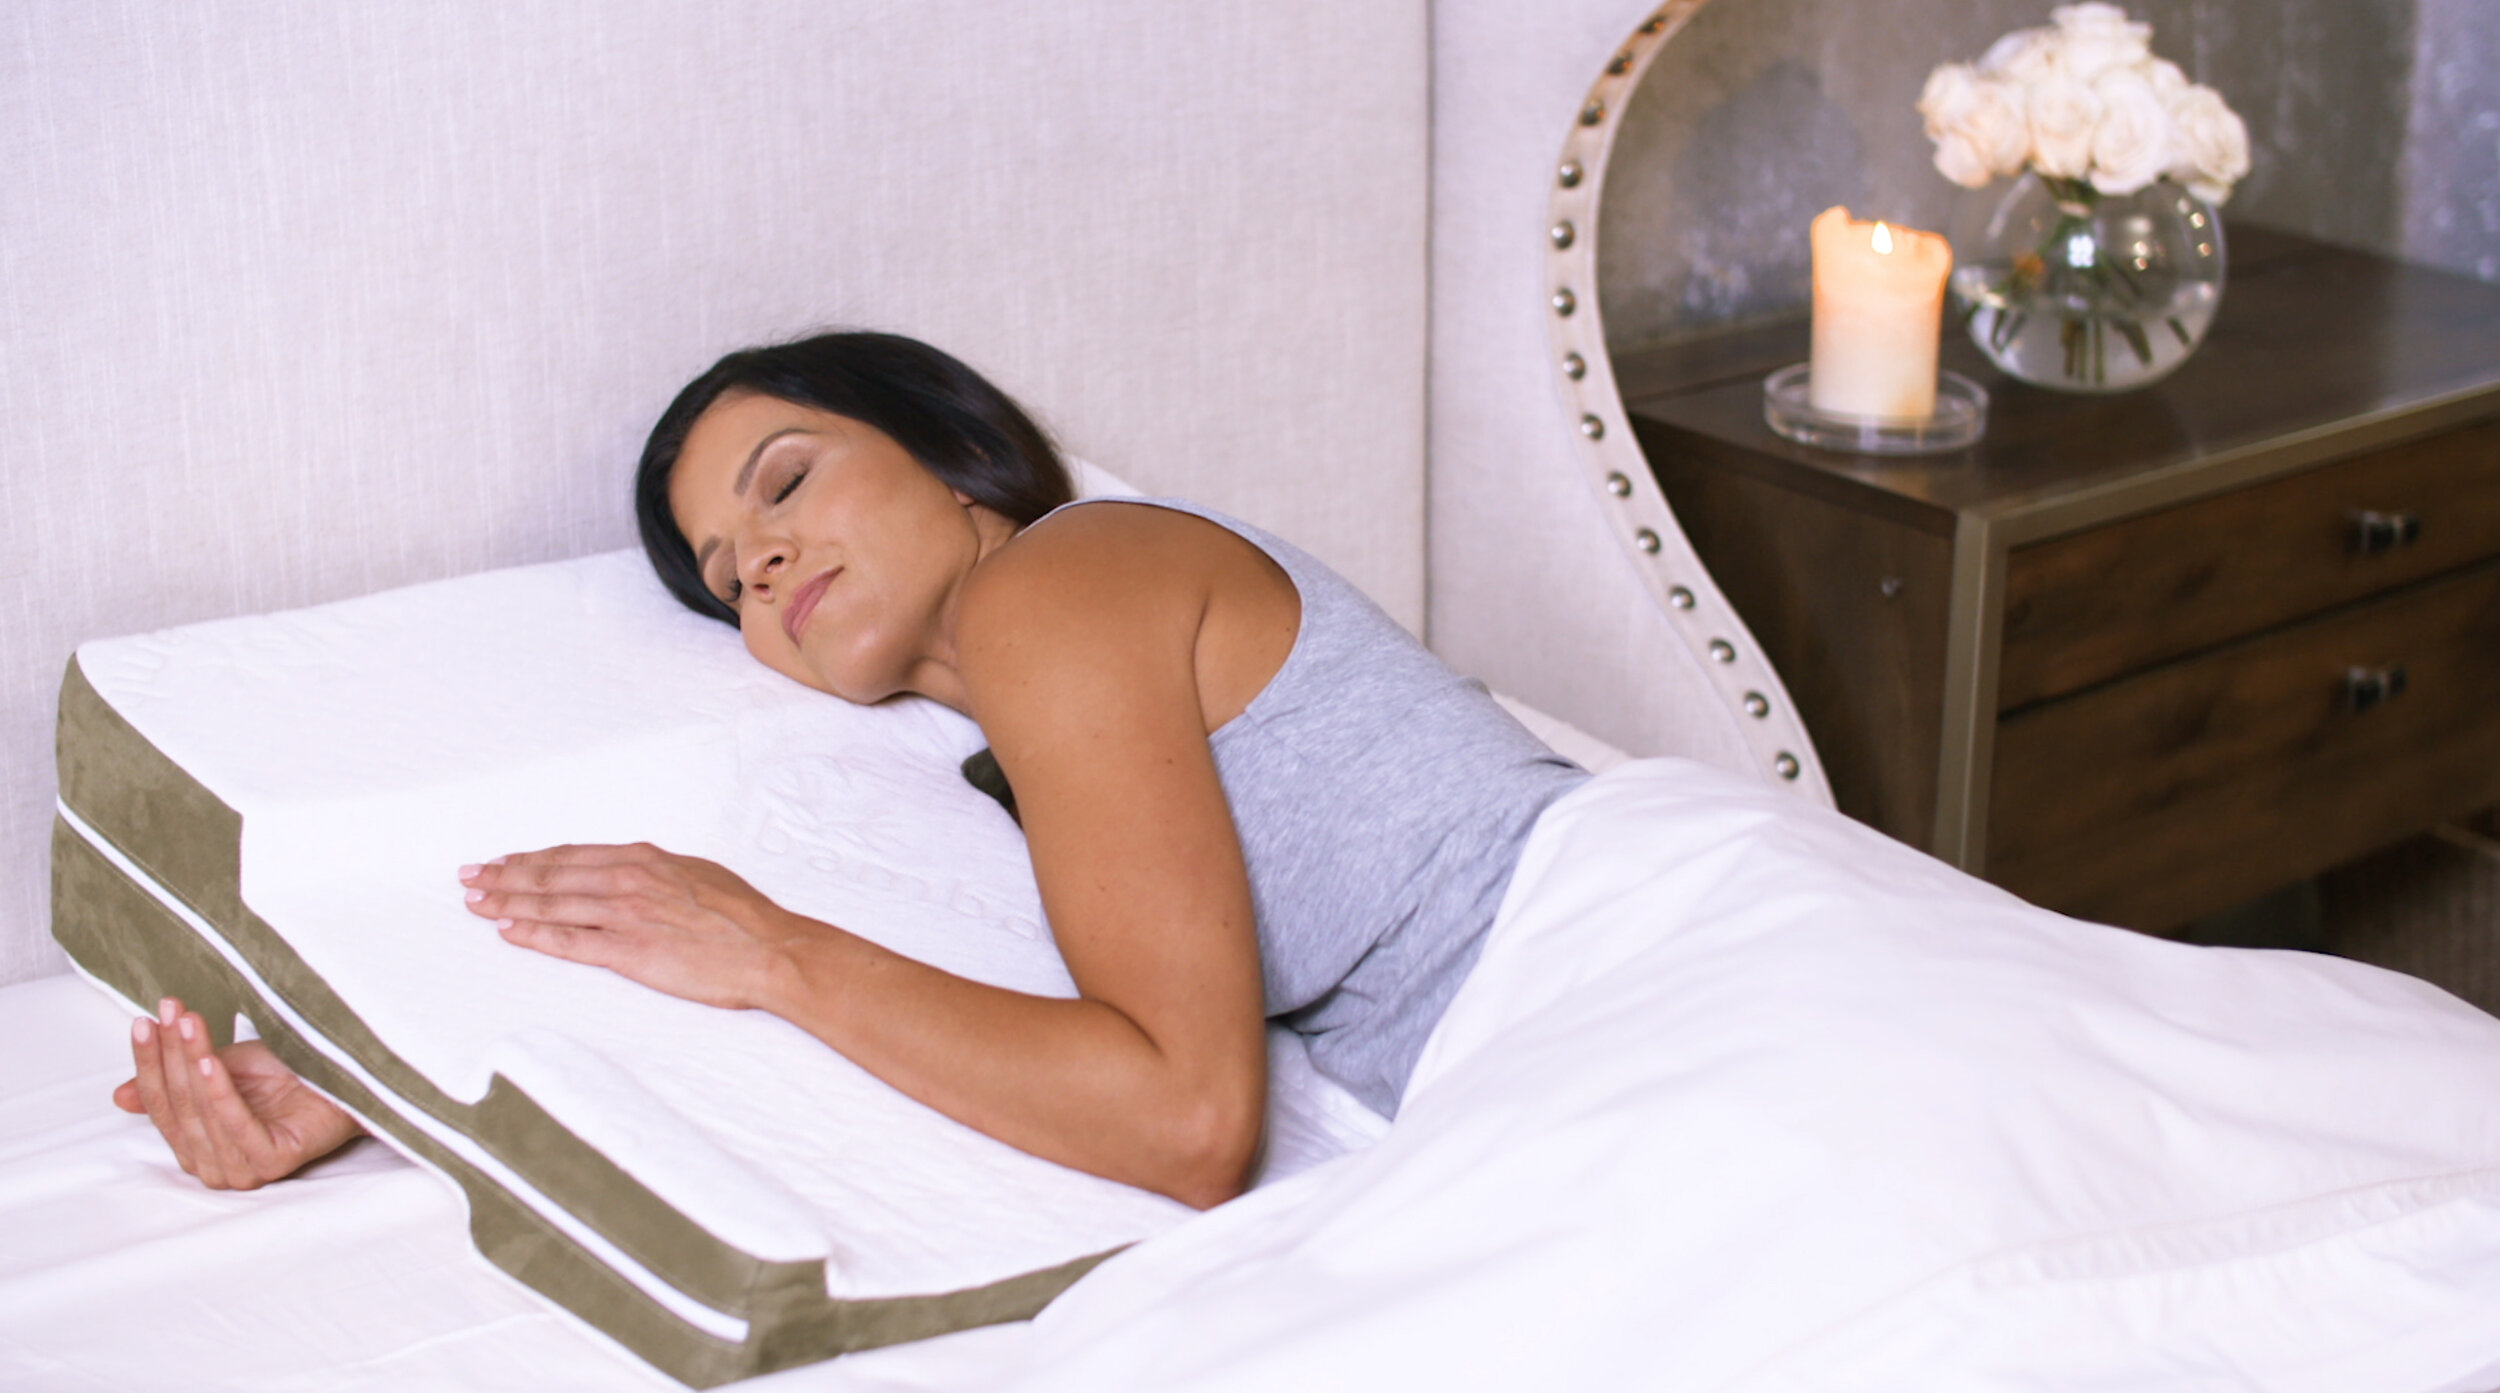 pain relieving pillow designed by